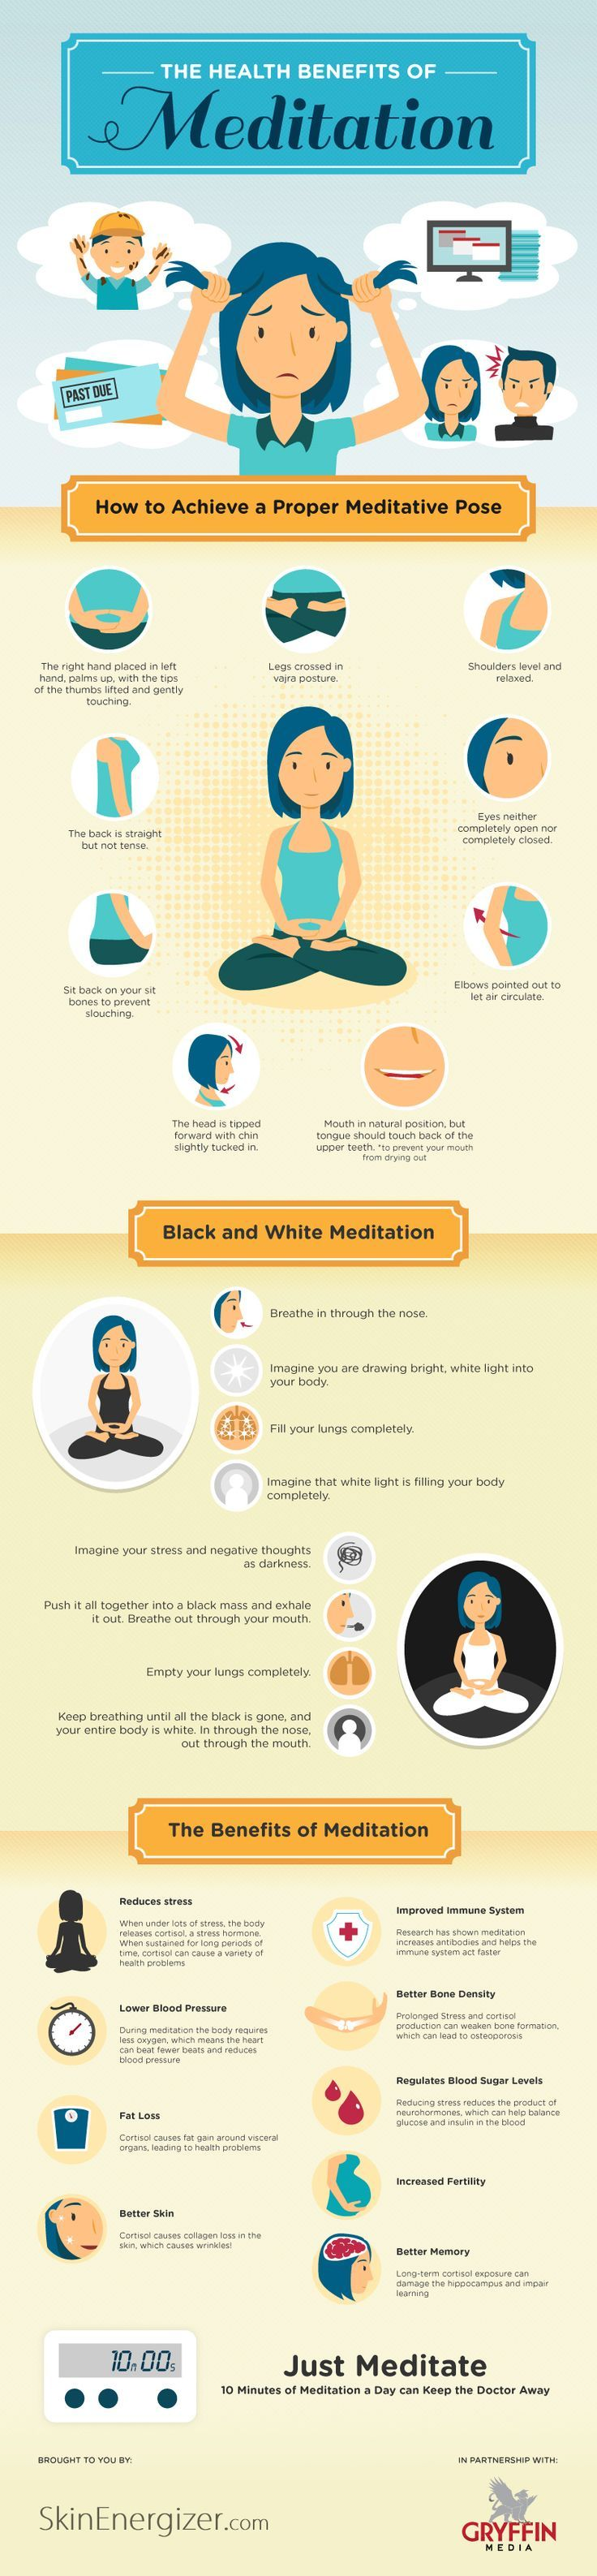 Meditation can be life altering!